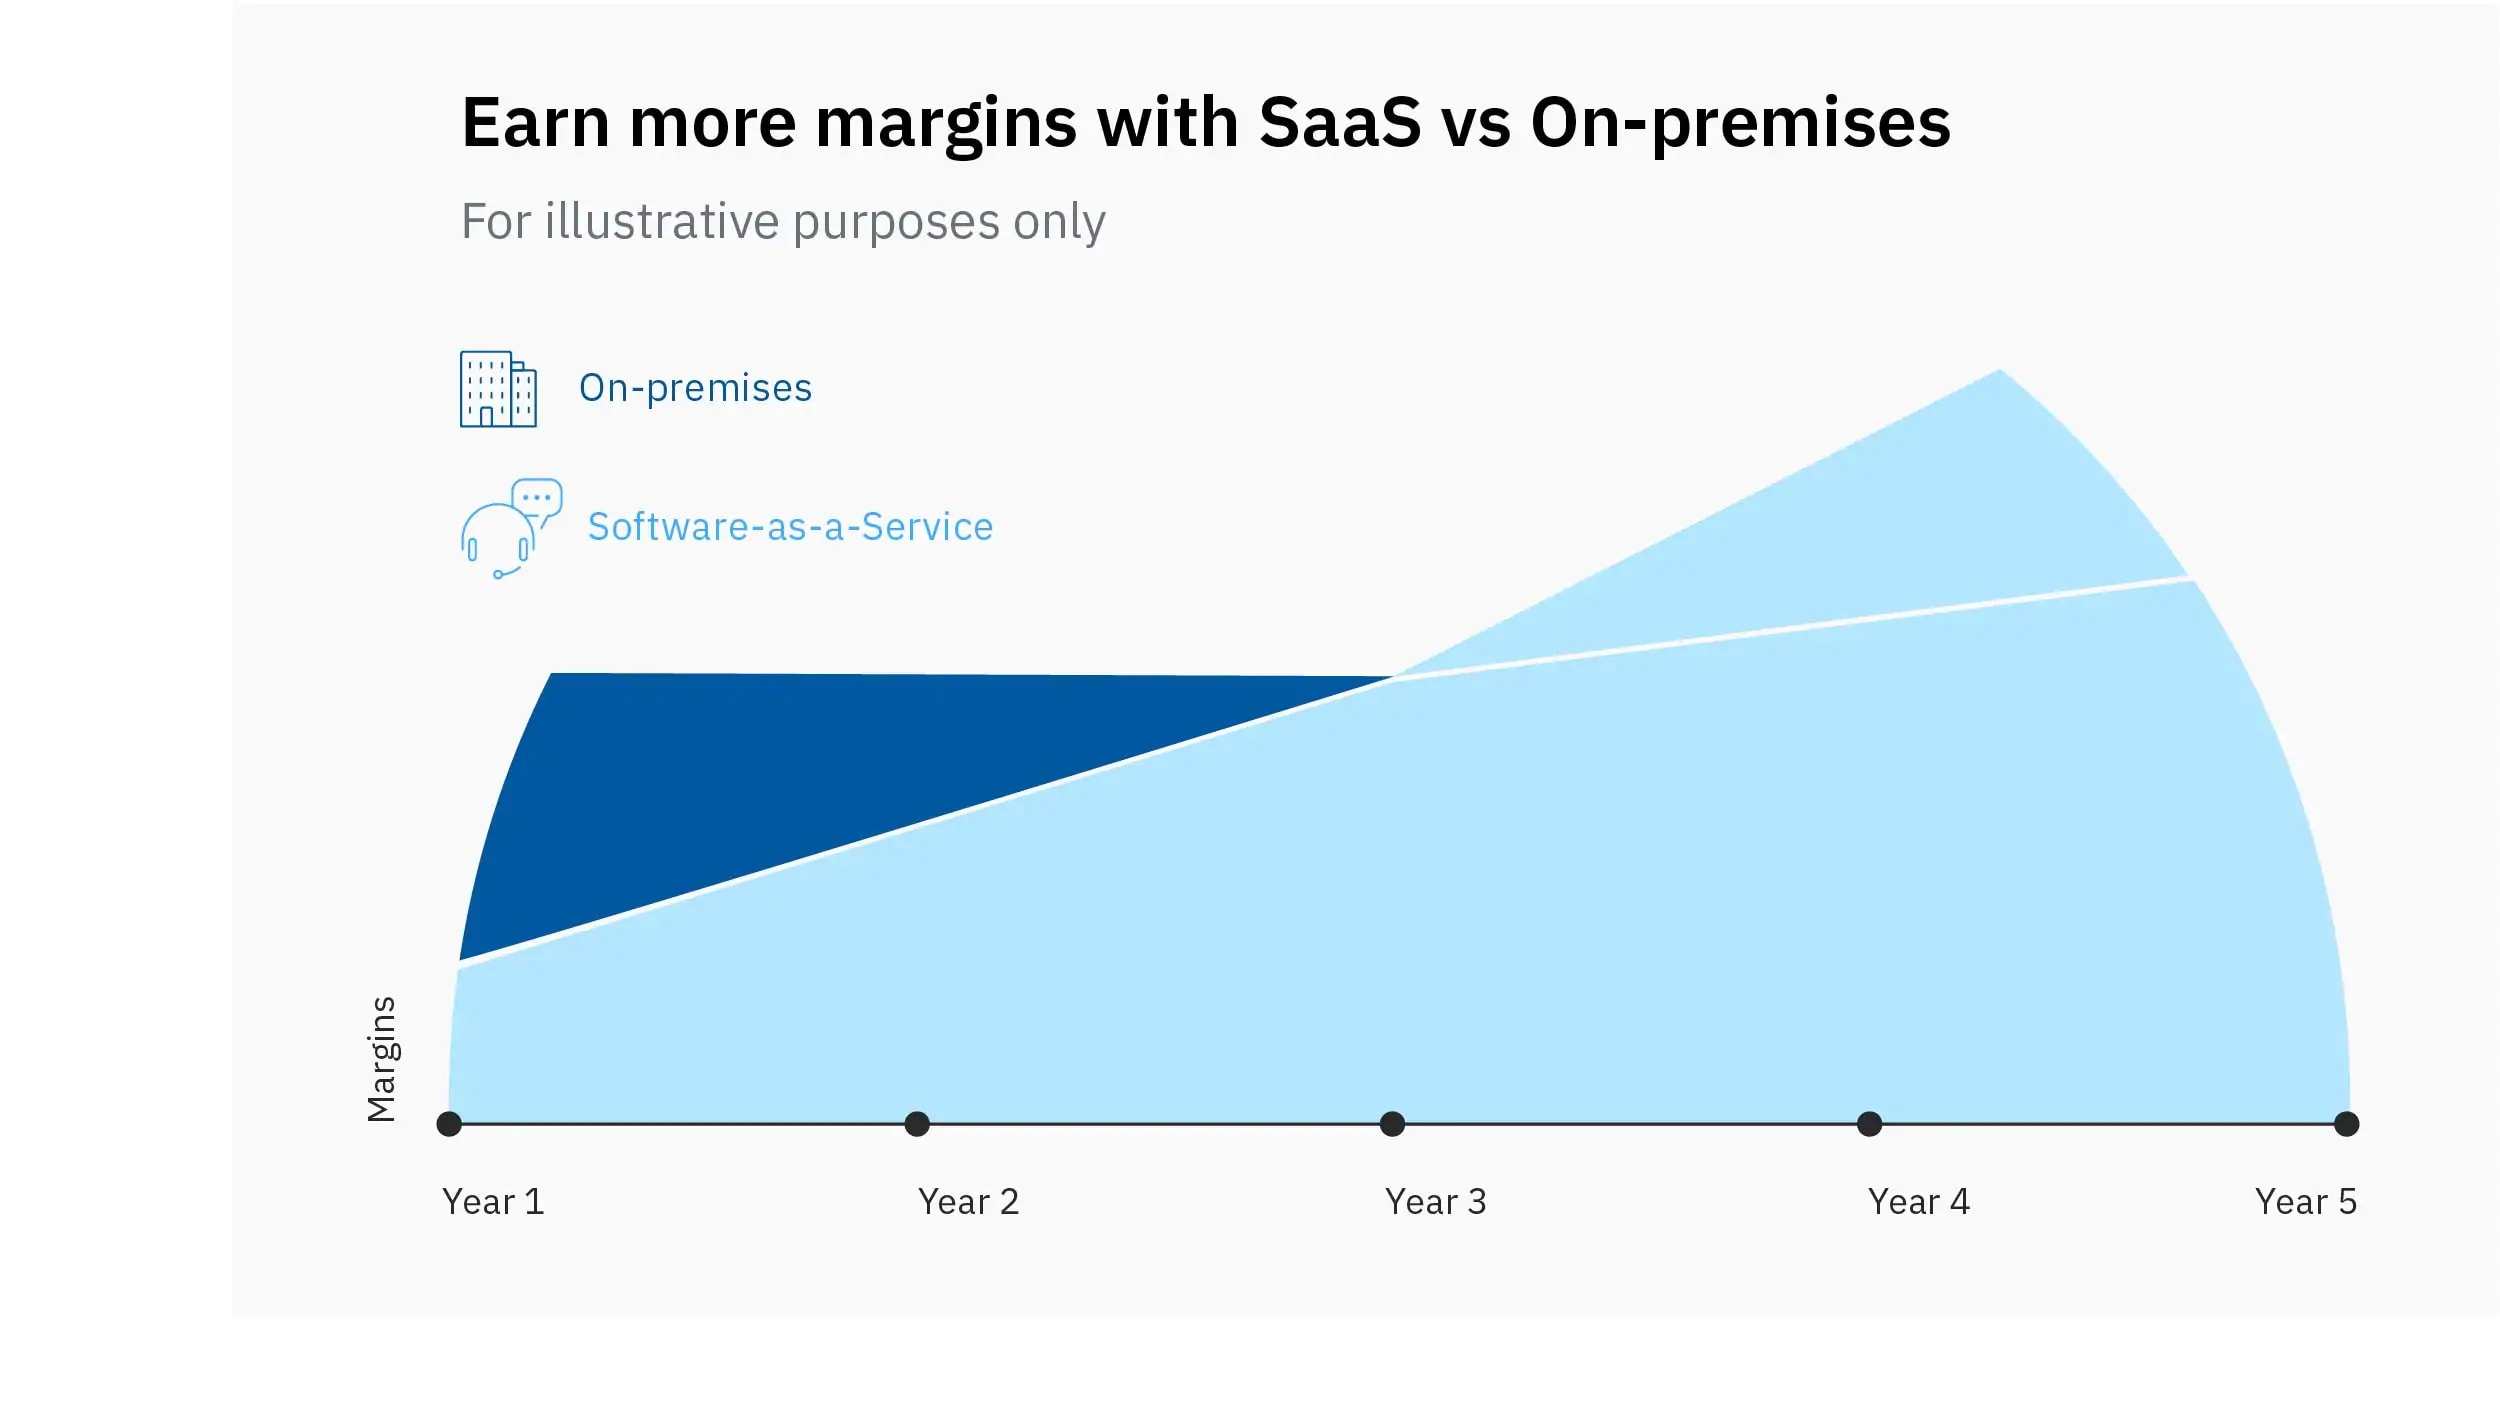 On average, partners can earn more with SaaS over time.